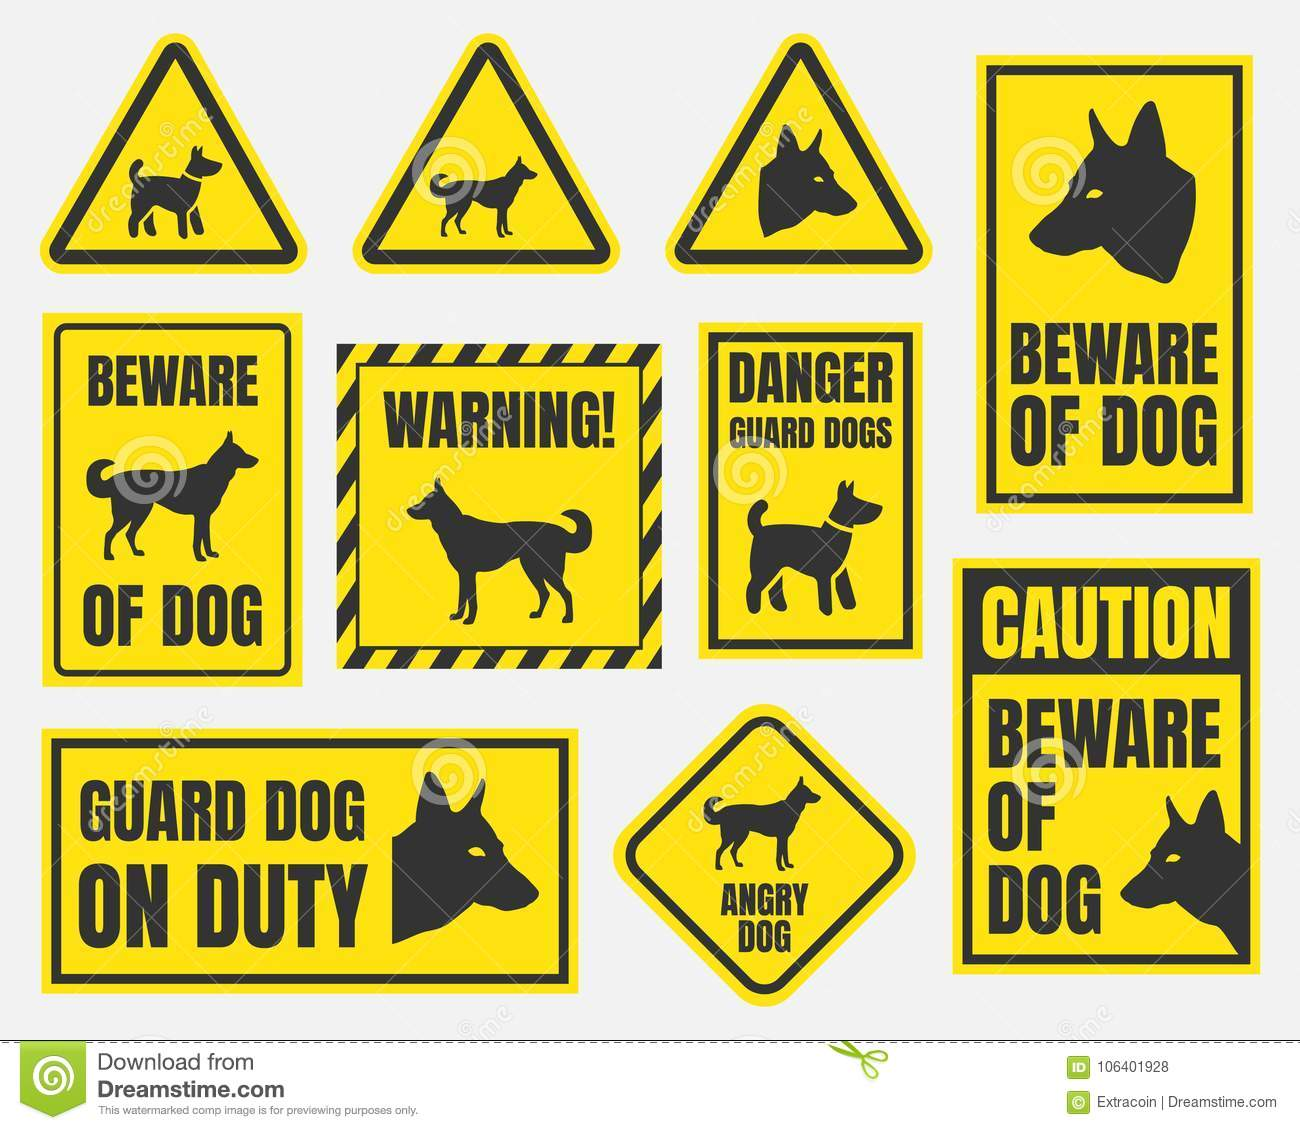 Beware Of Dog Sign Stock Vector Illustration Of Angry 106401928